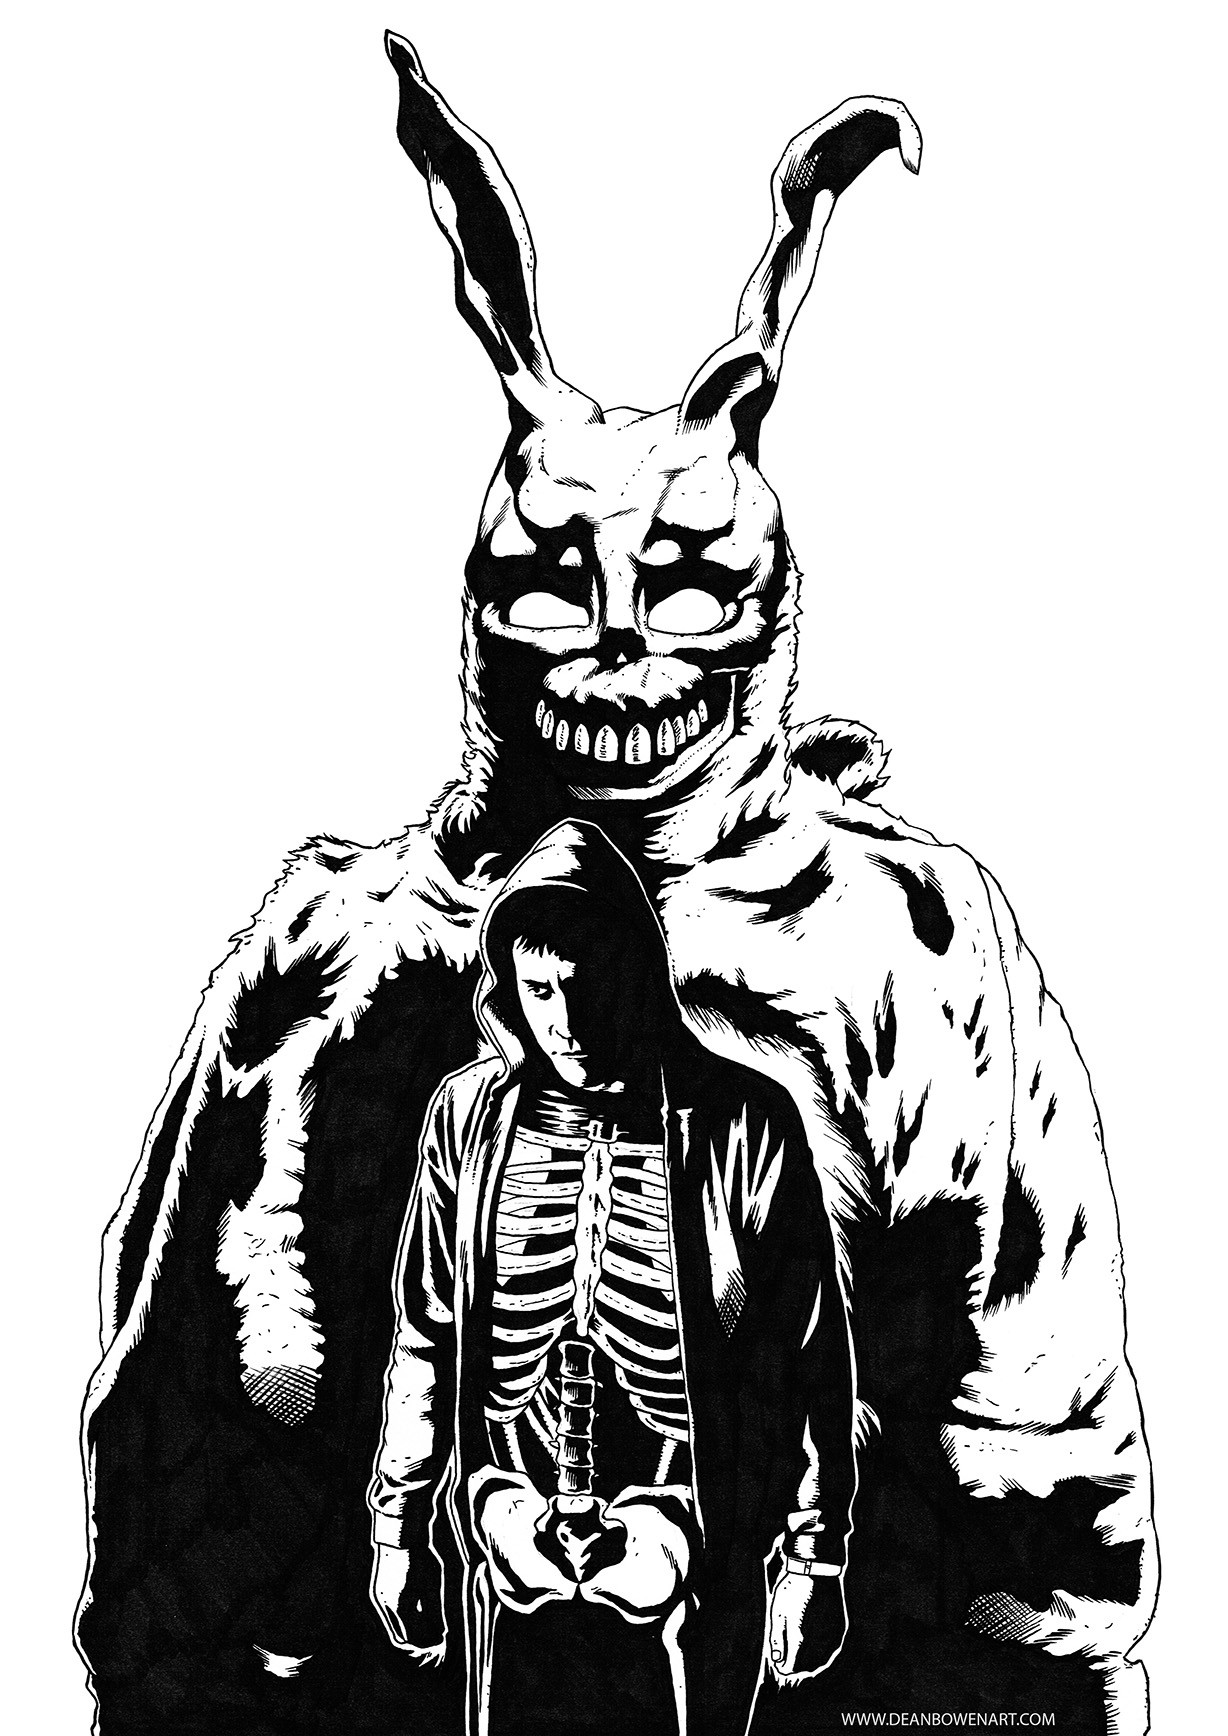 Dean bowen donnie darko inked